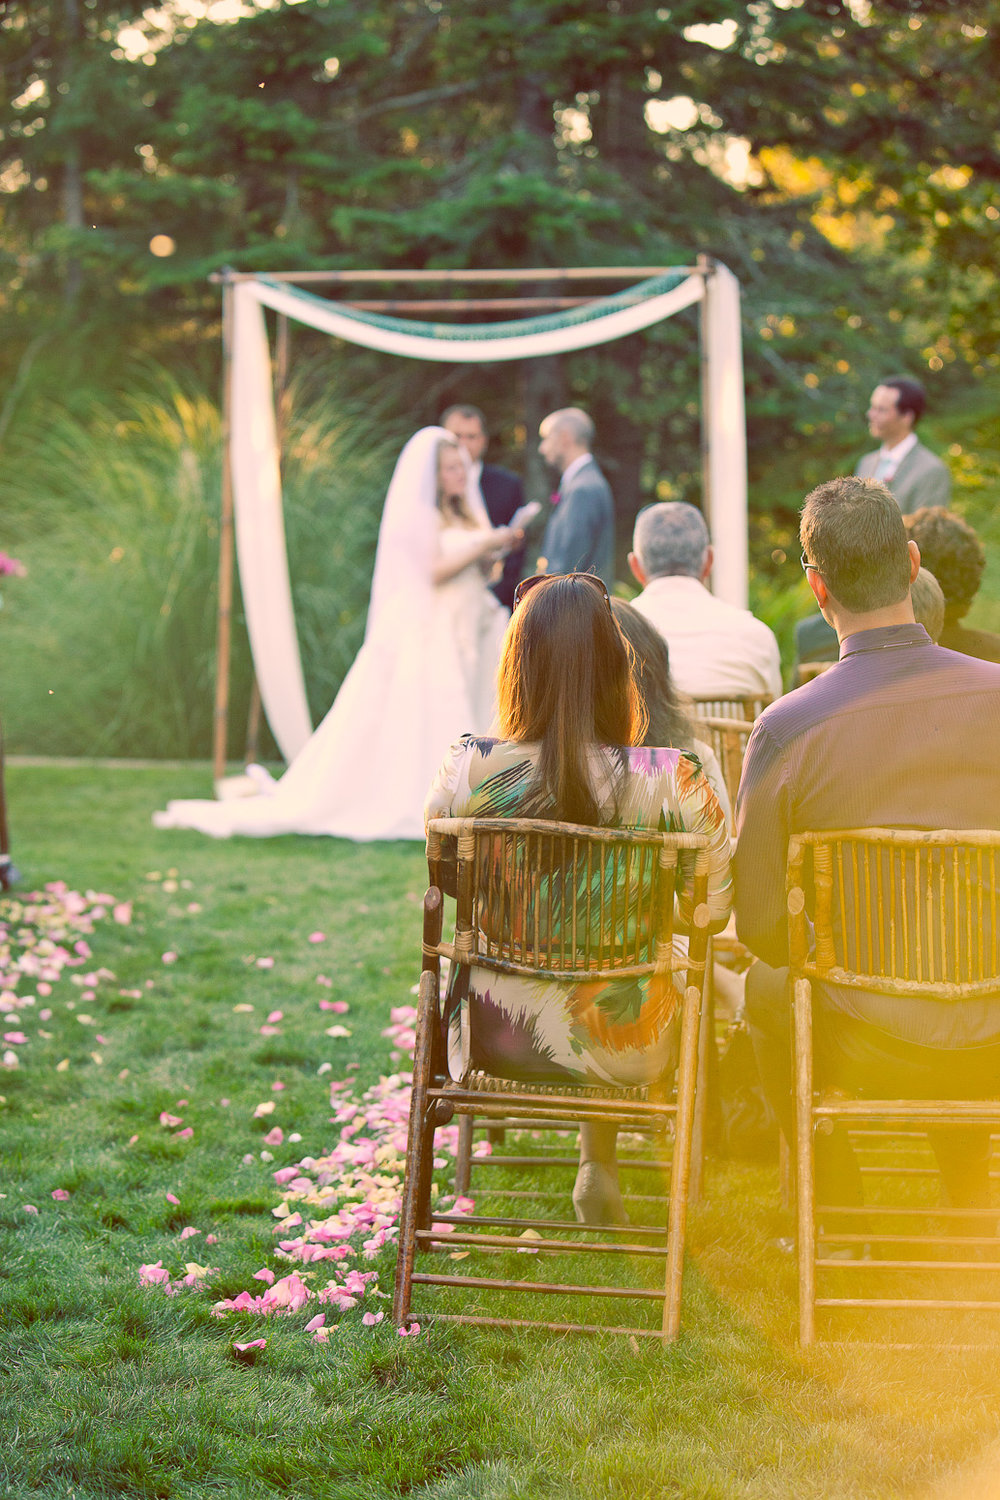 Gorgeous outdoor wedding at The Finery.jpg